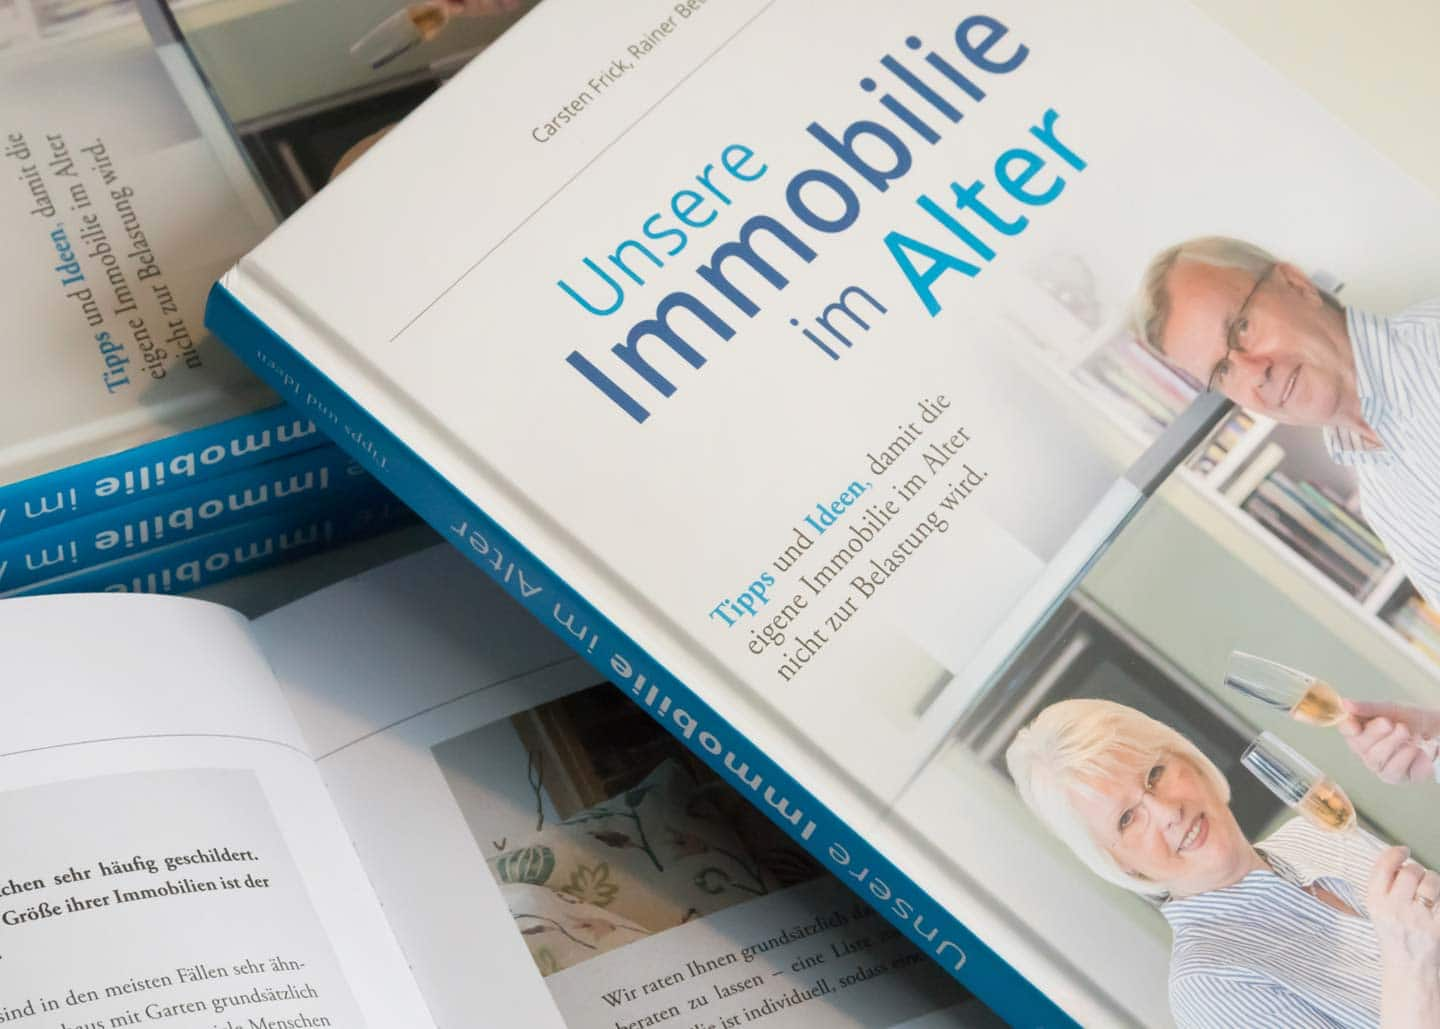 Buch - Unsere Immobilie im Alter